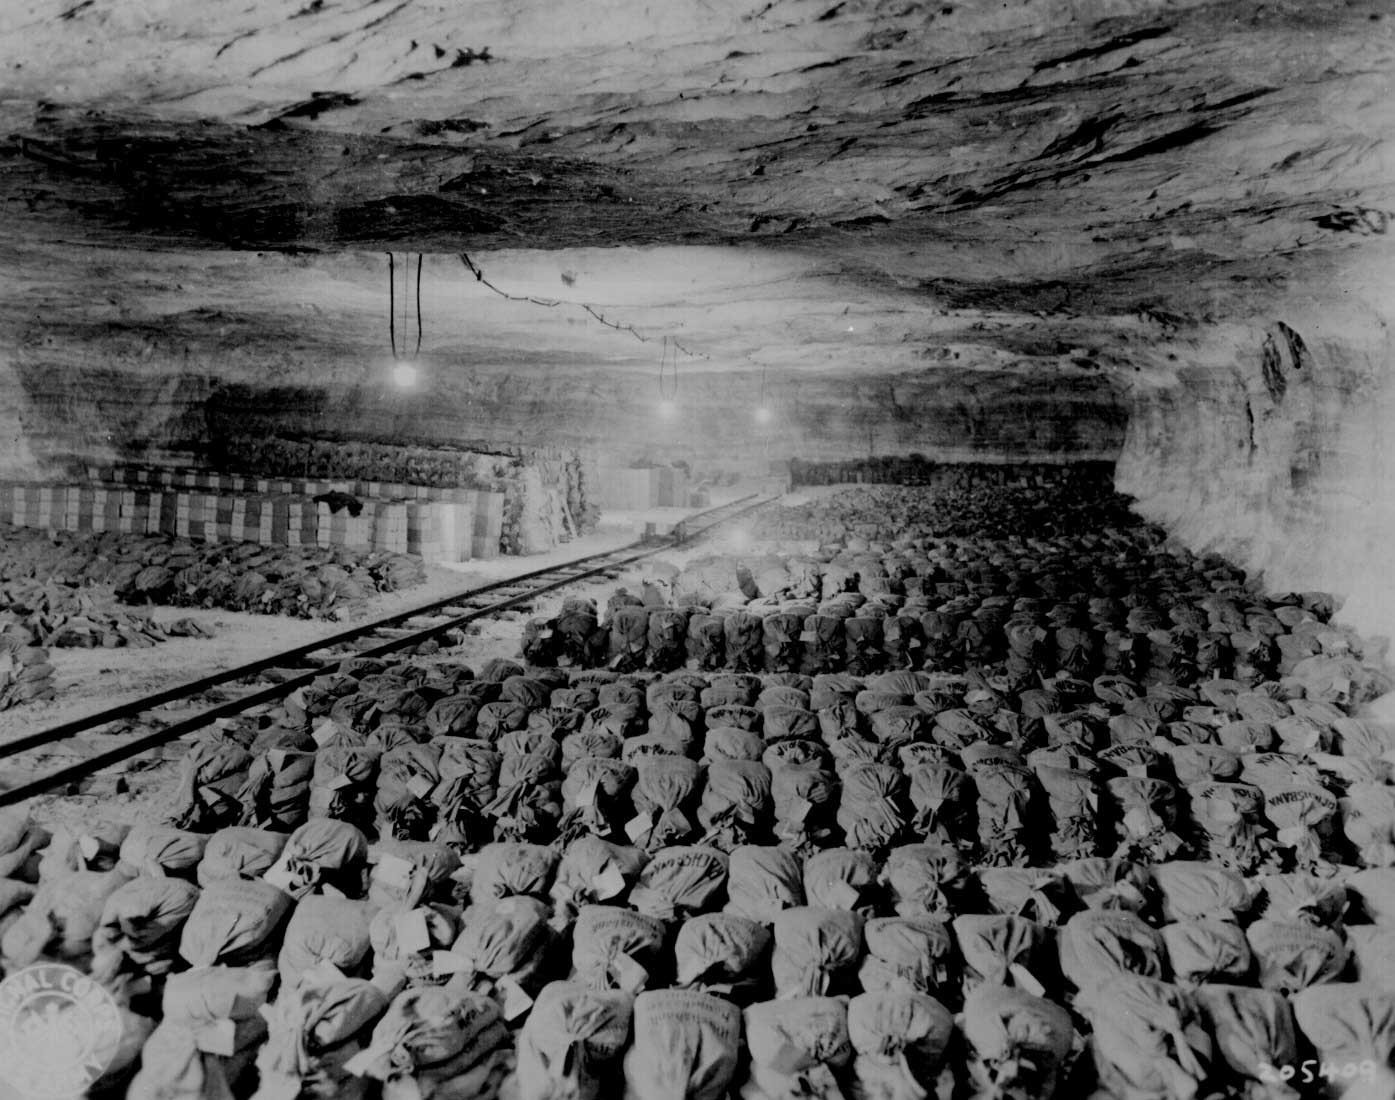 Precious metals, paintings, and other loot hidden by Germans in a salt mine near Merkers, Germany, photographed 15 Apr 1945 (US National Archives: 239-PA-6-34-2)